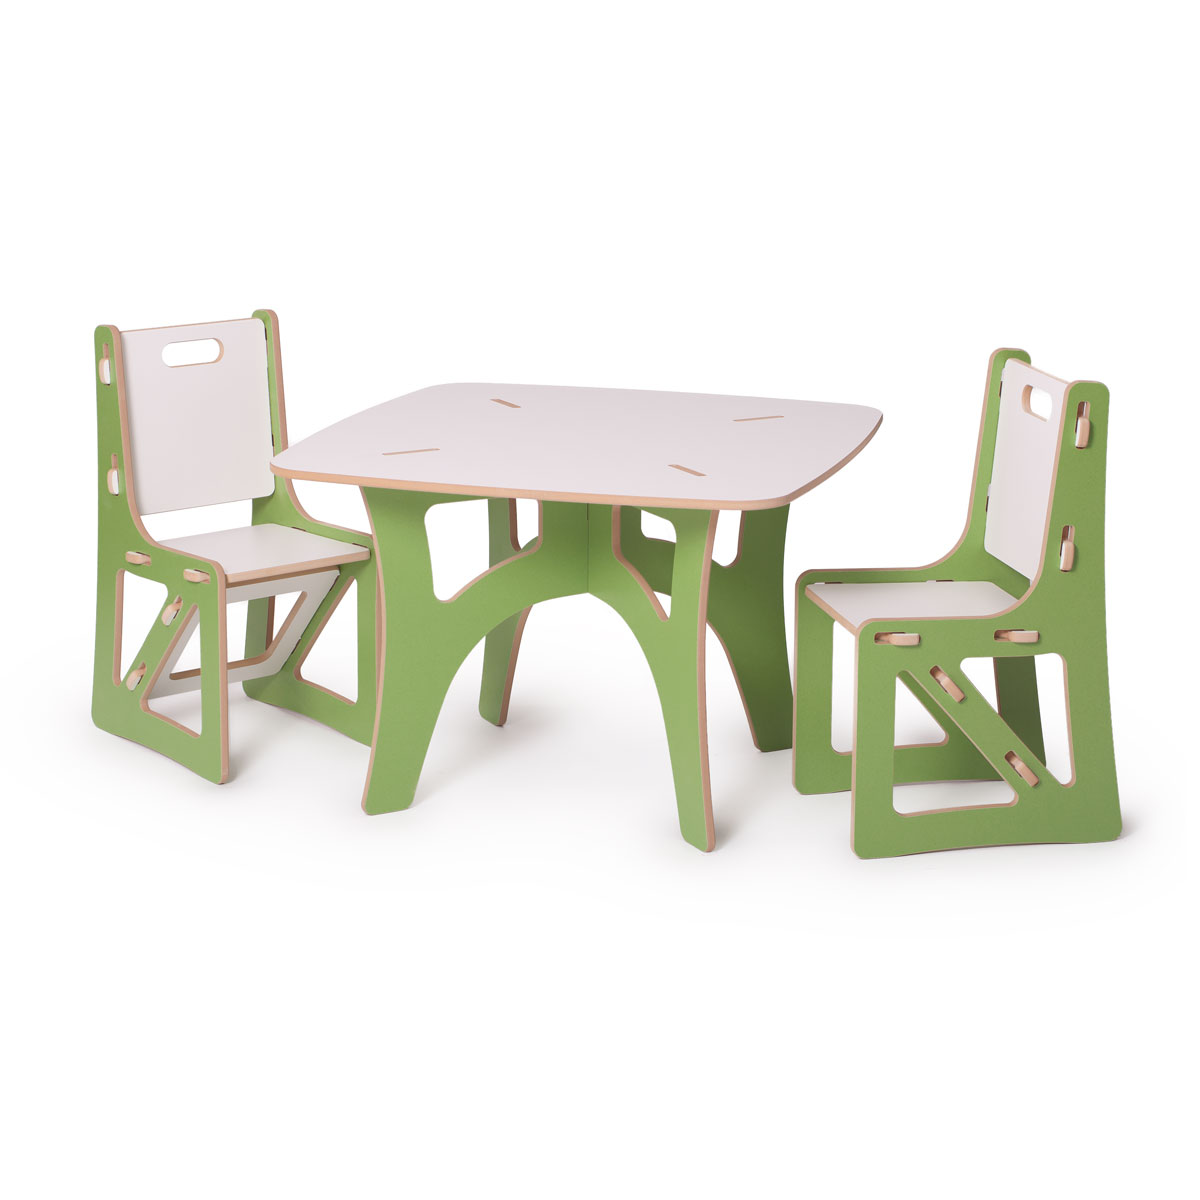 Modern Kid s Table and Chairs